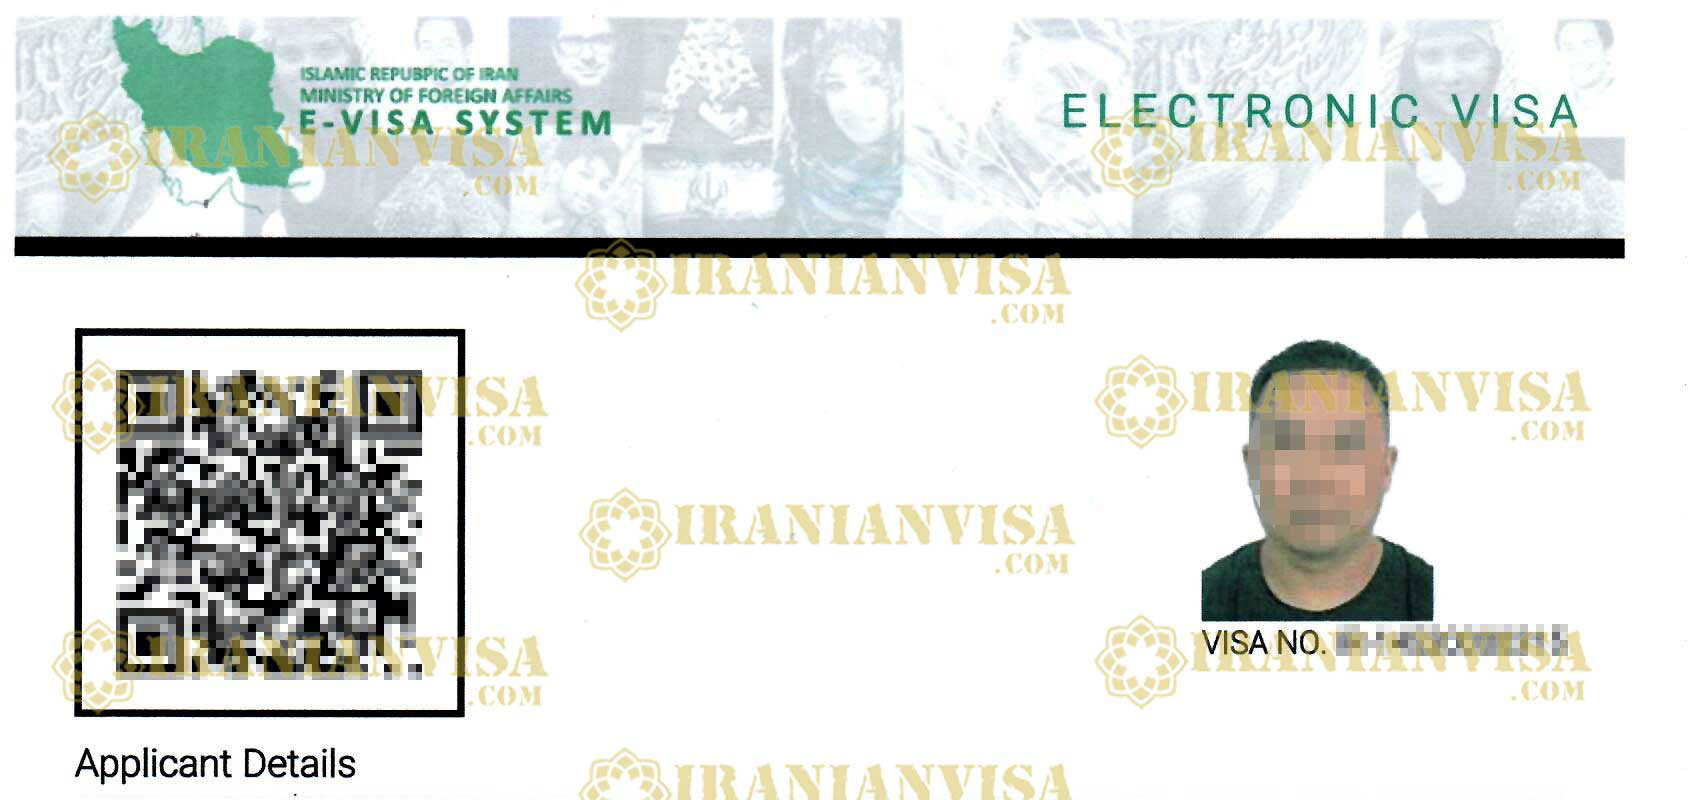 Iran Visa Application 20 Only Iran Visa By Iranianvisa Com